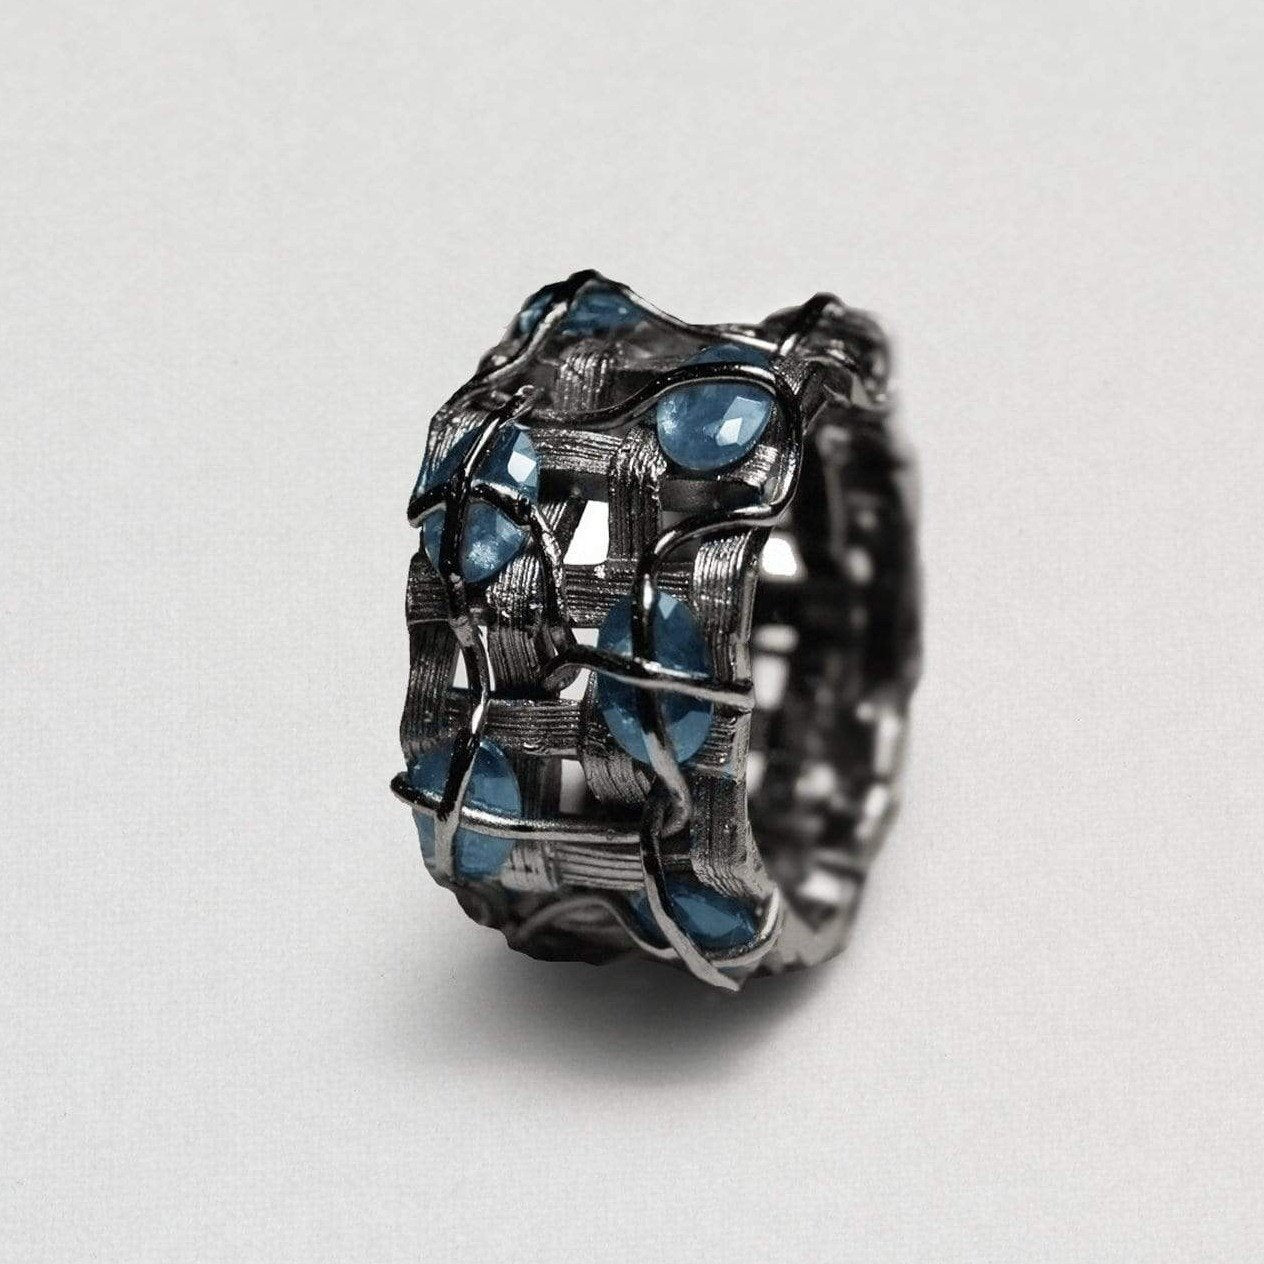 Fisara Ring, gray, Handmade, Rhodium, Sapphire, spo-disabled, StoneColor:DeepBlue, Style:Everyday, Type:StoneCandyWired Ring